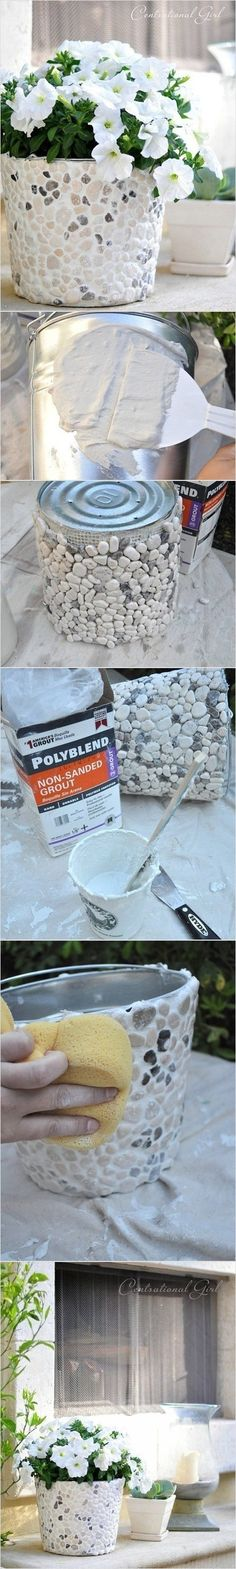 beautiful DIY idea , an old paint can to pebble planter.This would make a great house warming gift as well..